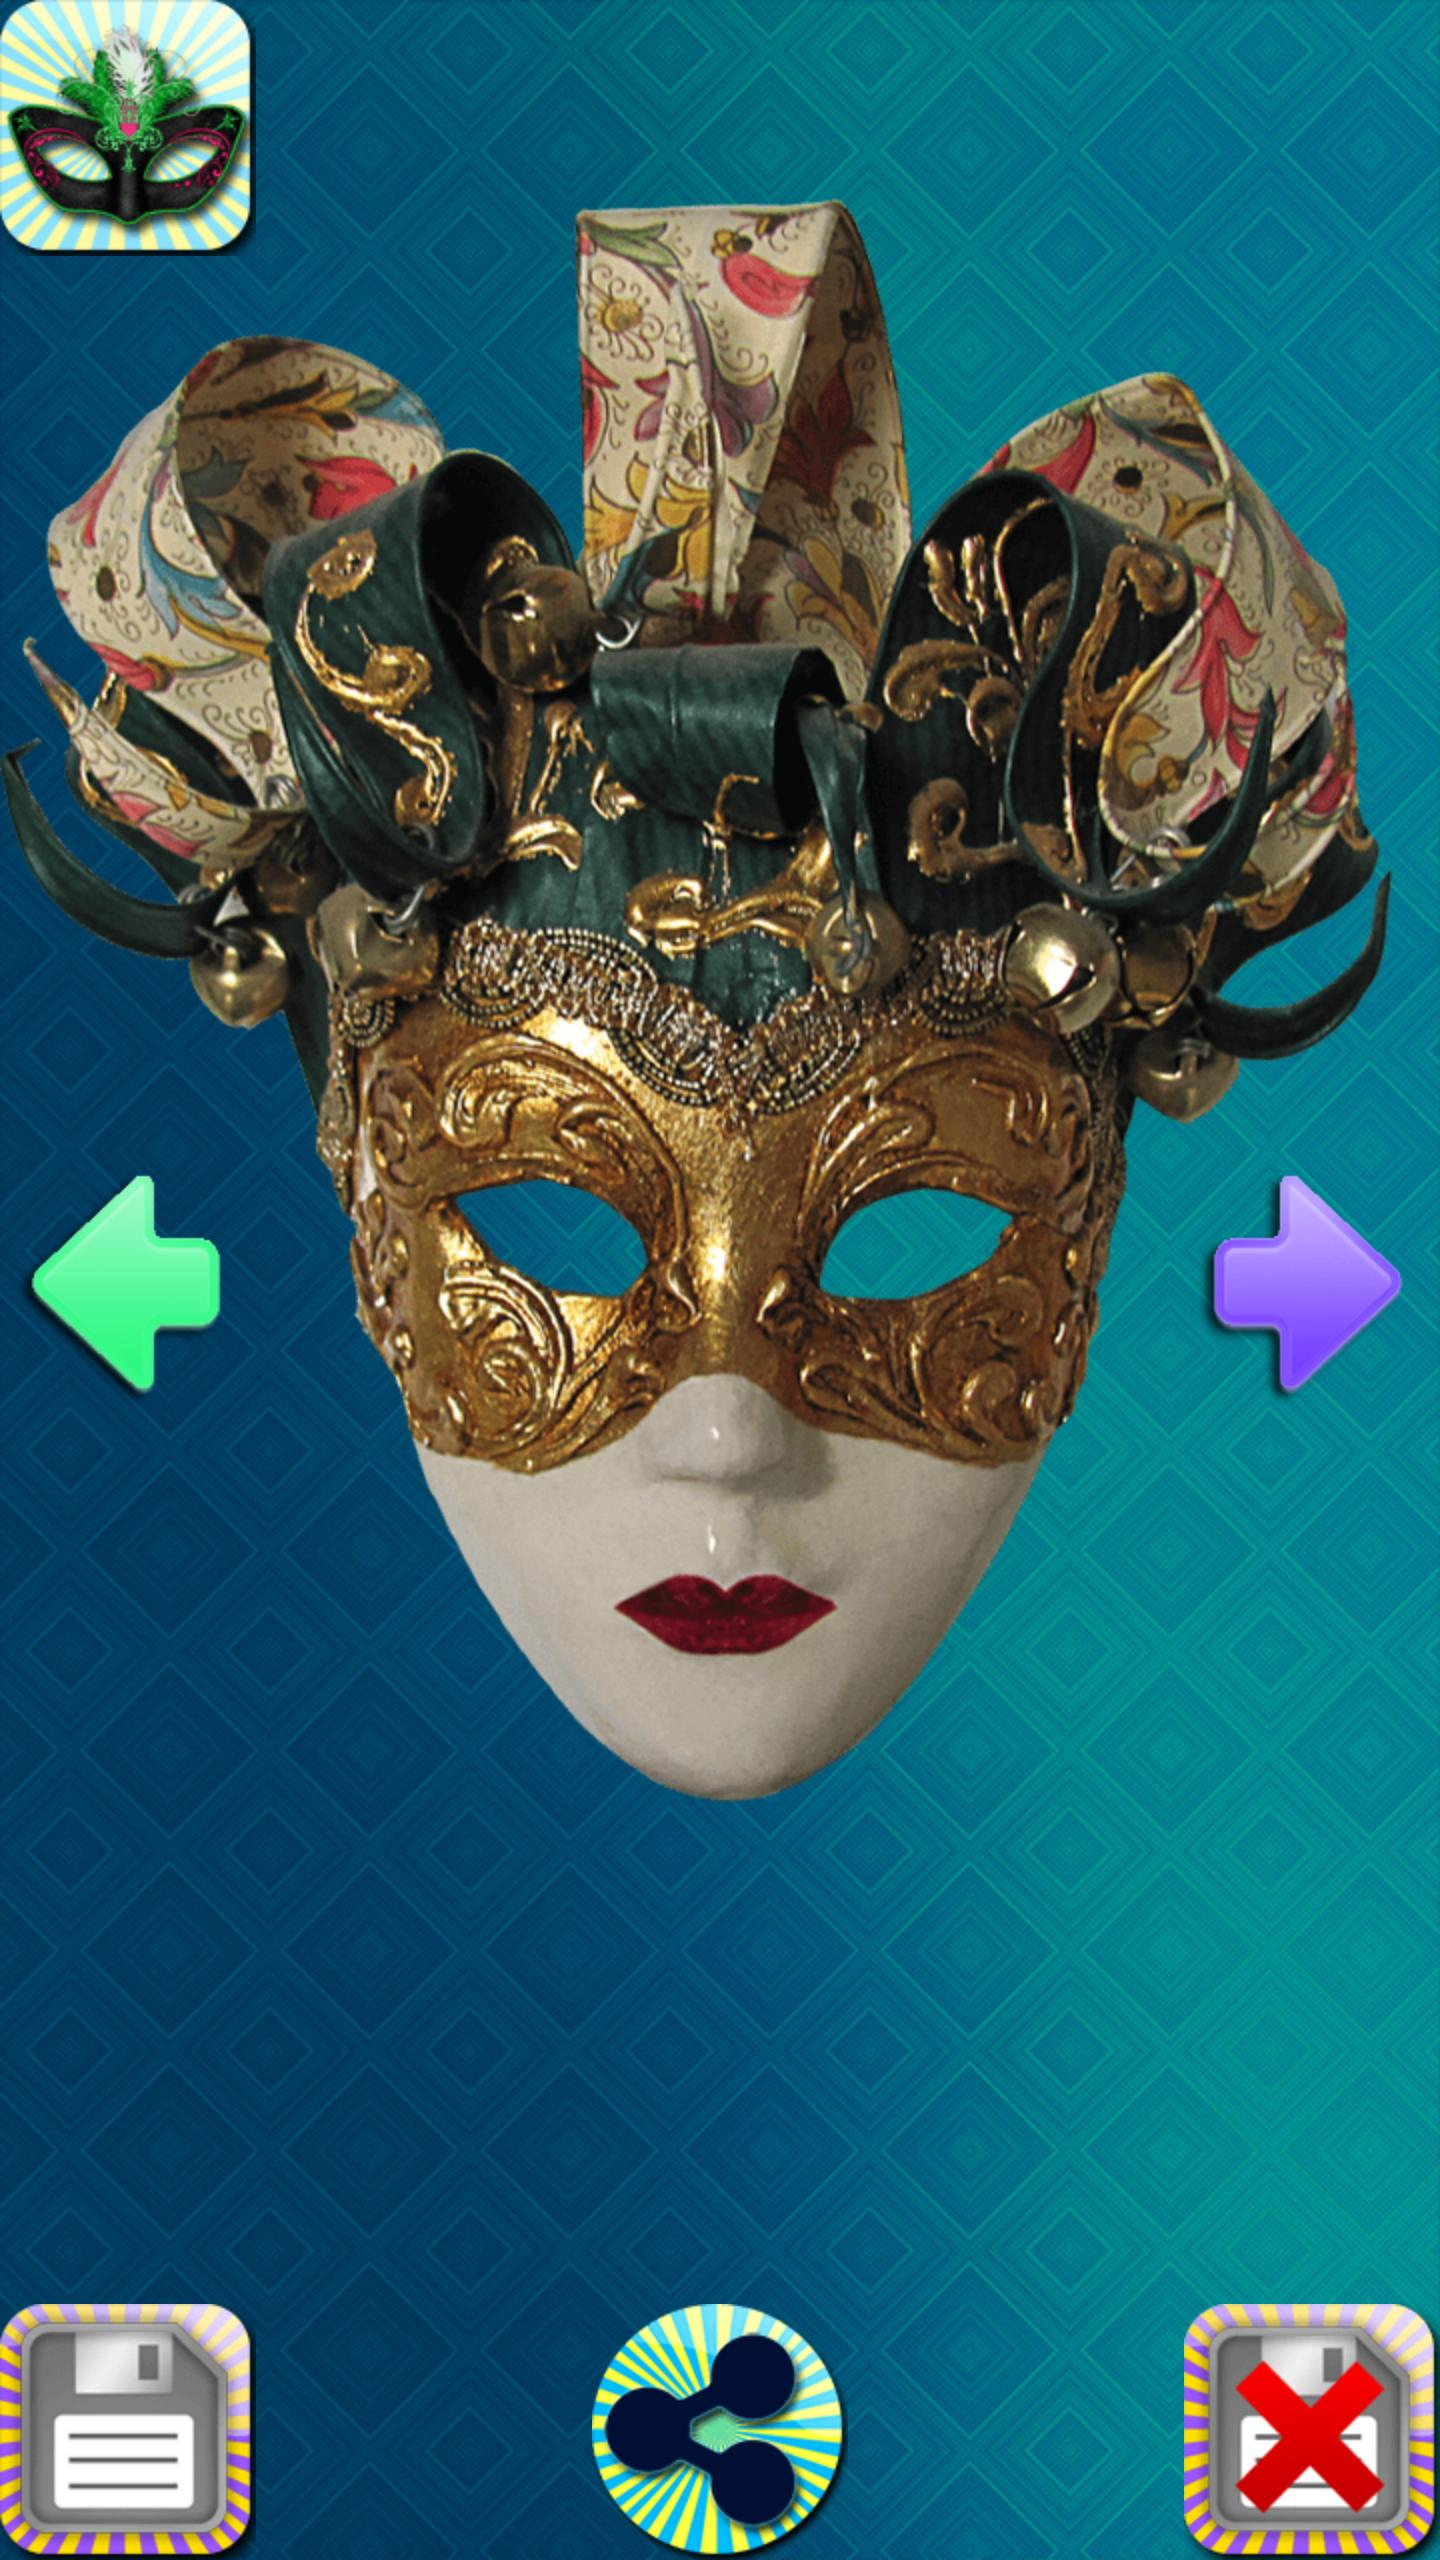 Face Mask Photo Editor for Android - APK Download